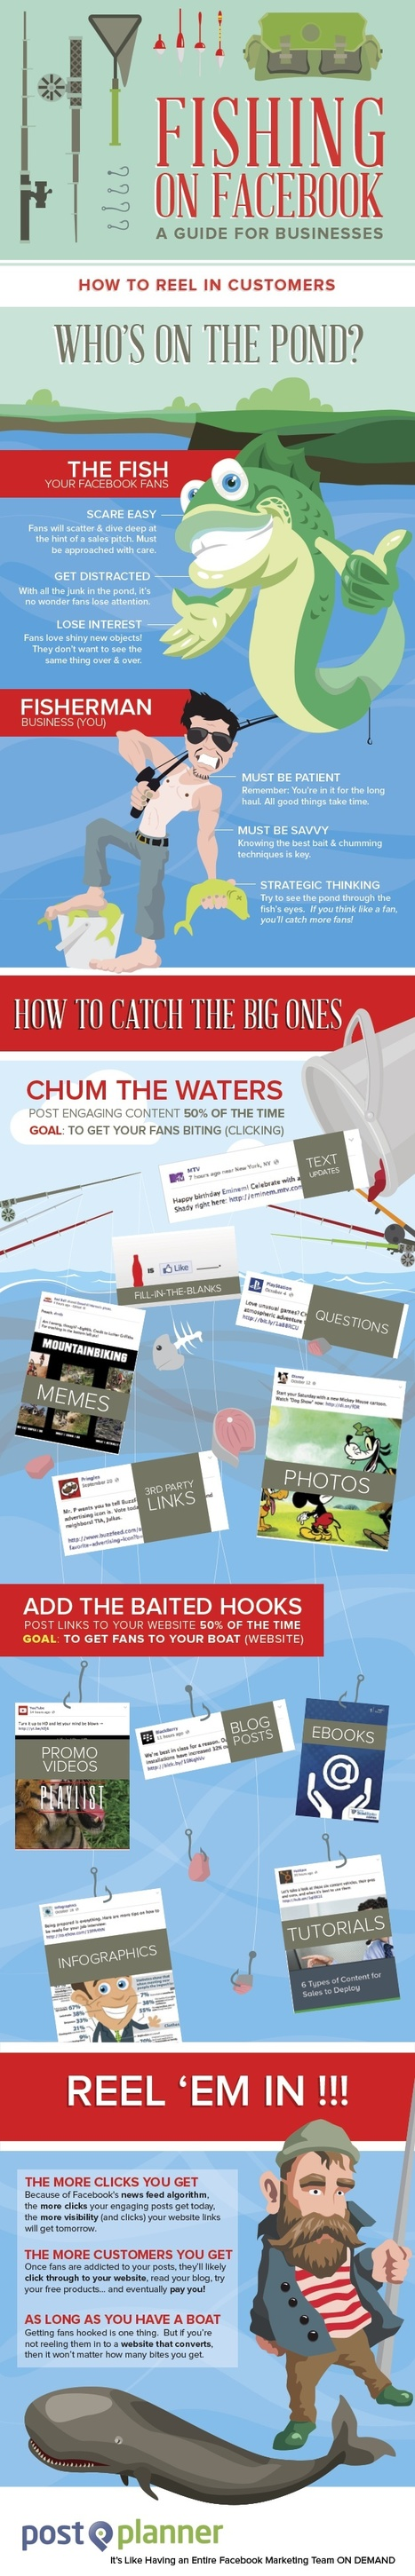 Fishing on Facebook: A Guide for Businesses #infographic | MarketingHits | Scoop.it